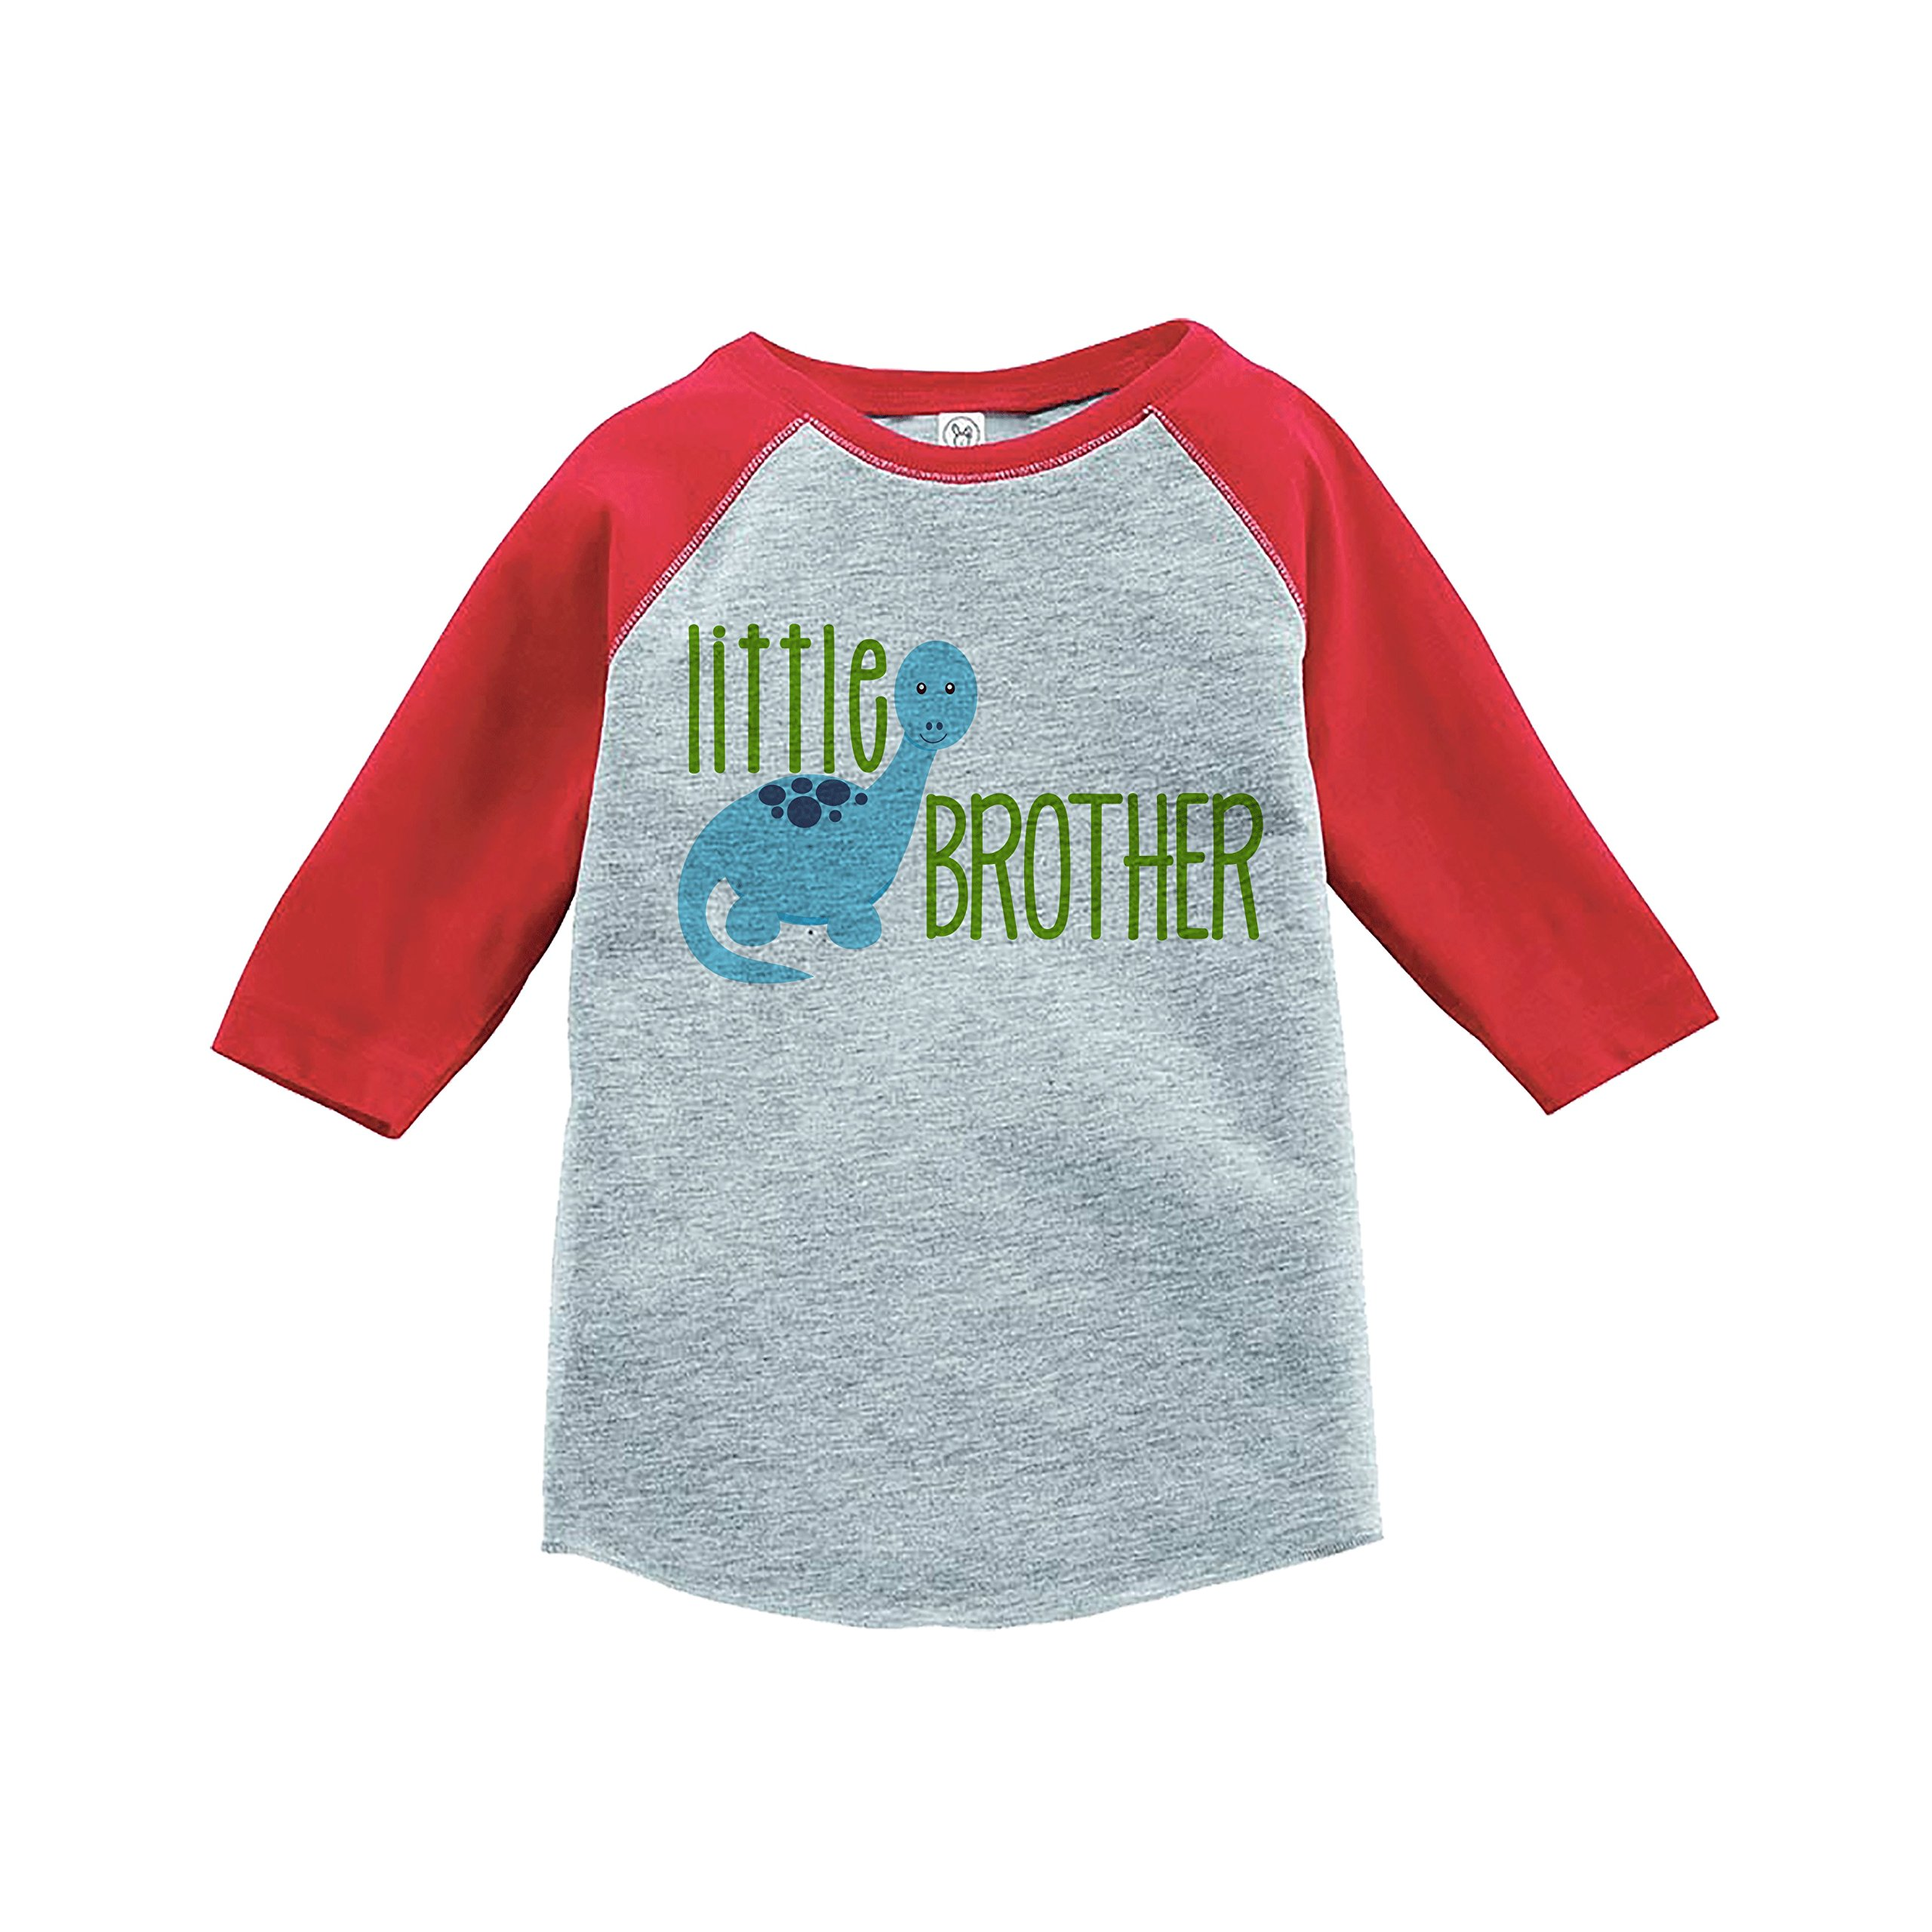 7 ate 9 Apparel Boy's Dinosaur Little Brother Red Baseball Tee